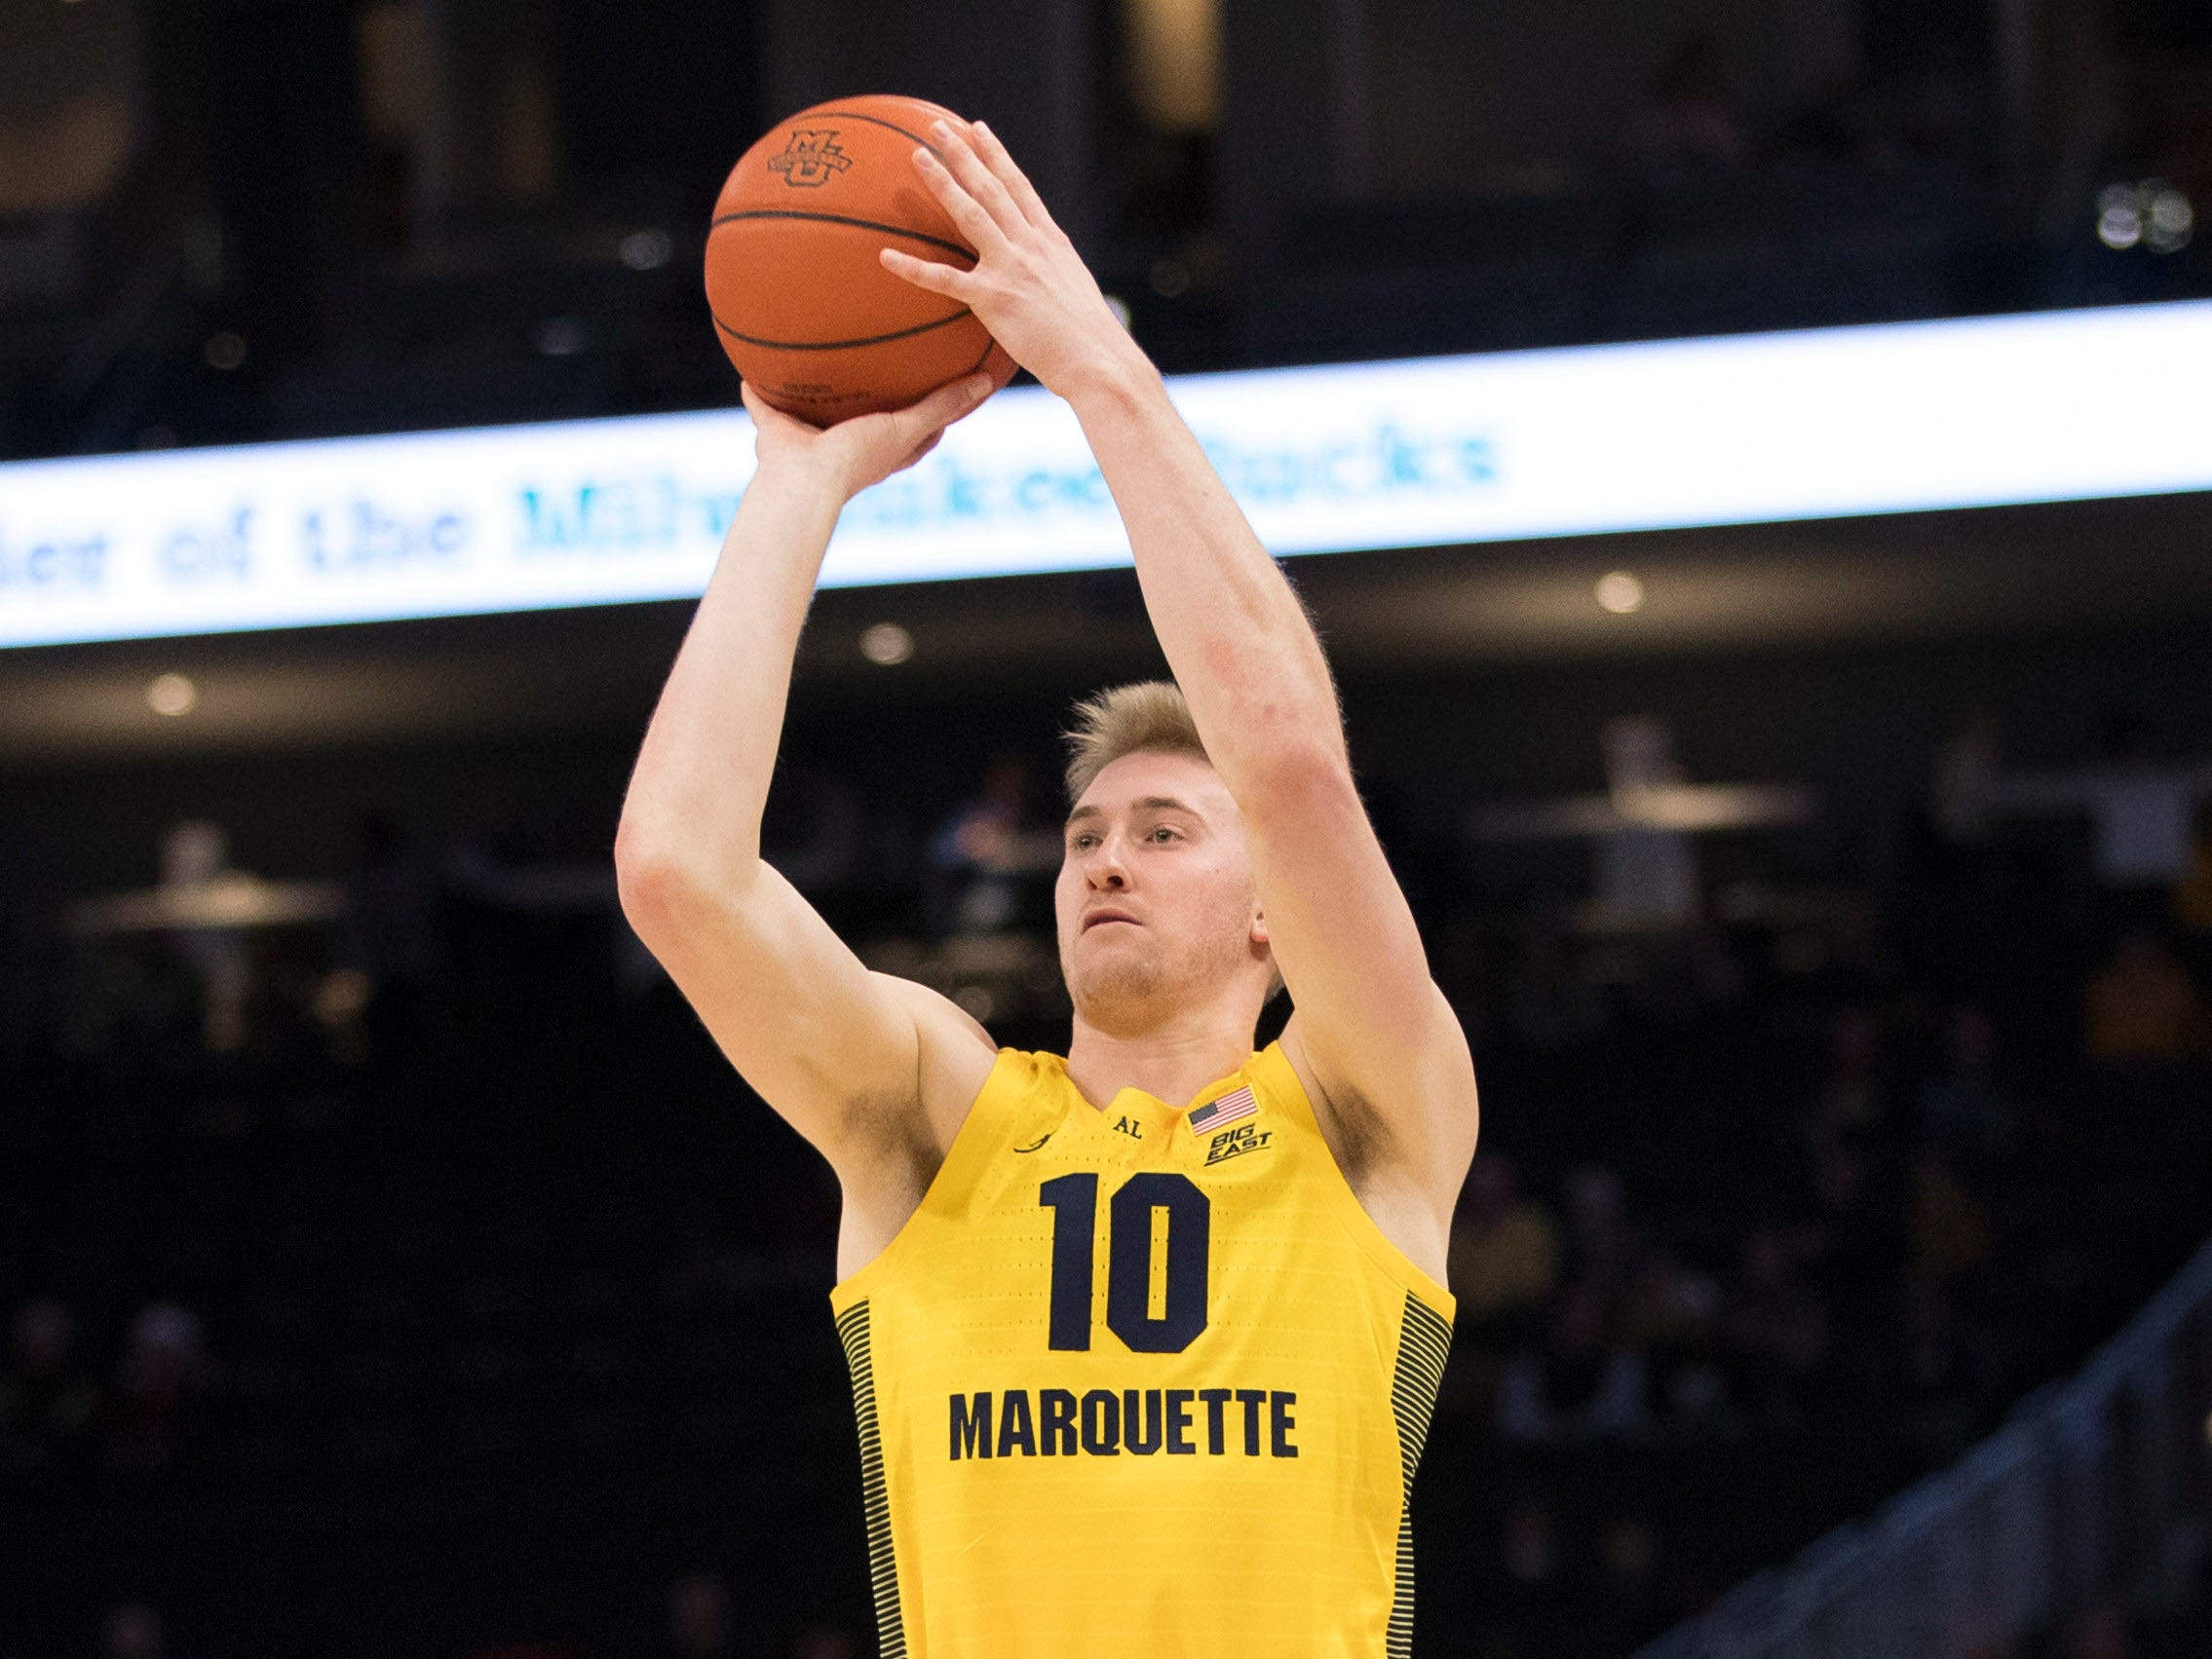 Marquette forward Sam Hauser gets ready to take a shot against North Dakota on Tuesday night.